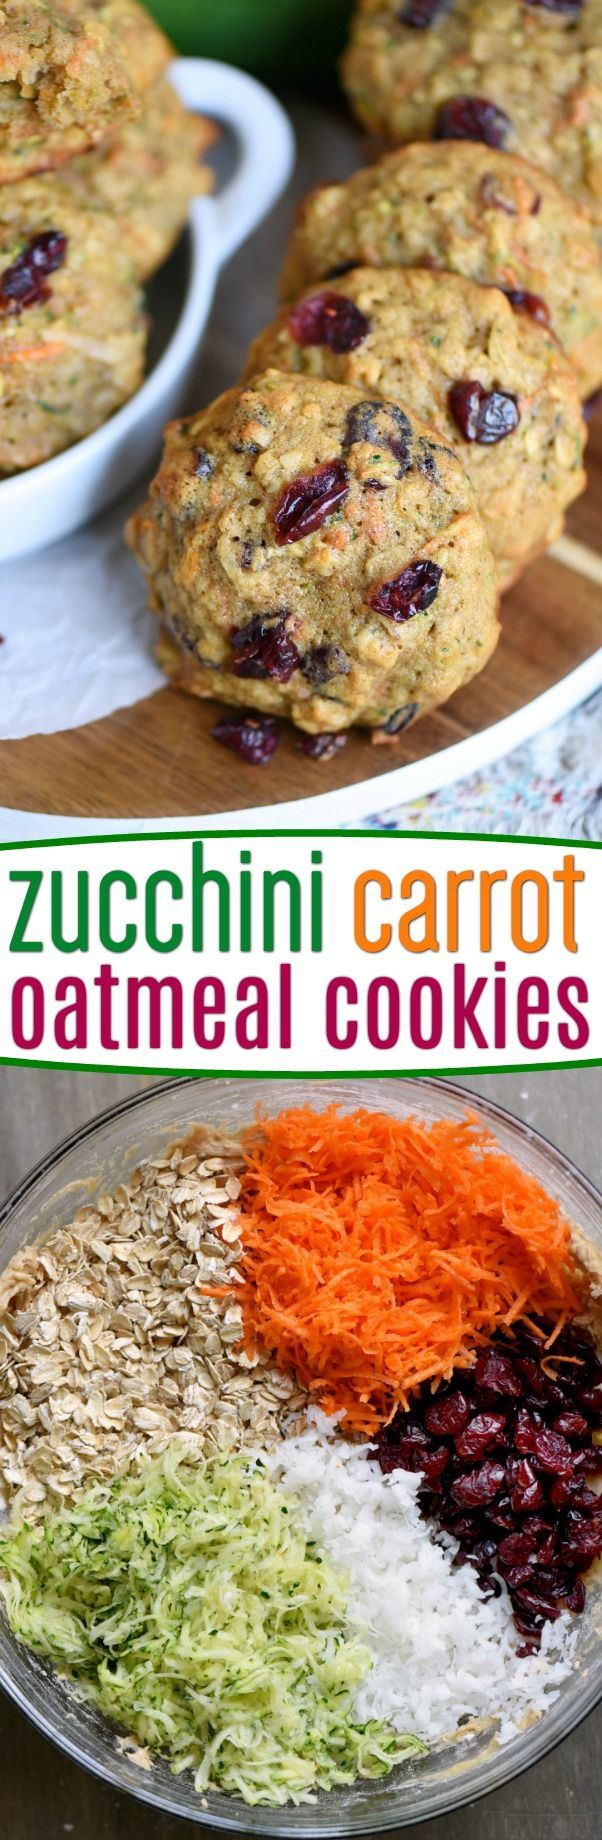 These amazing Zucchini Carrot Oatmeal Cookies are packed full of zucchini, carrots, oatmeal, dried cranberries, and coconut!  All the good stuff! The perfect after school snack! // Mom On Timeout #zucchini #carrot #oatmeal #coconut #cookies #recipe #dessert #breakfast #snack